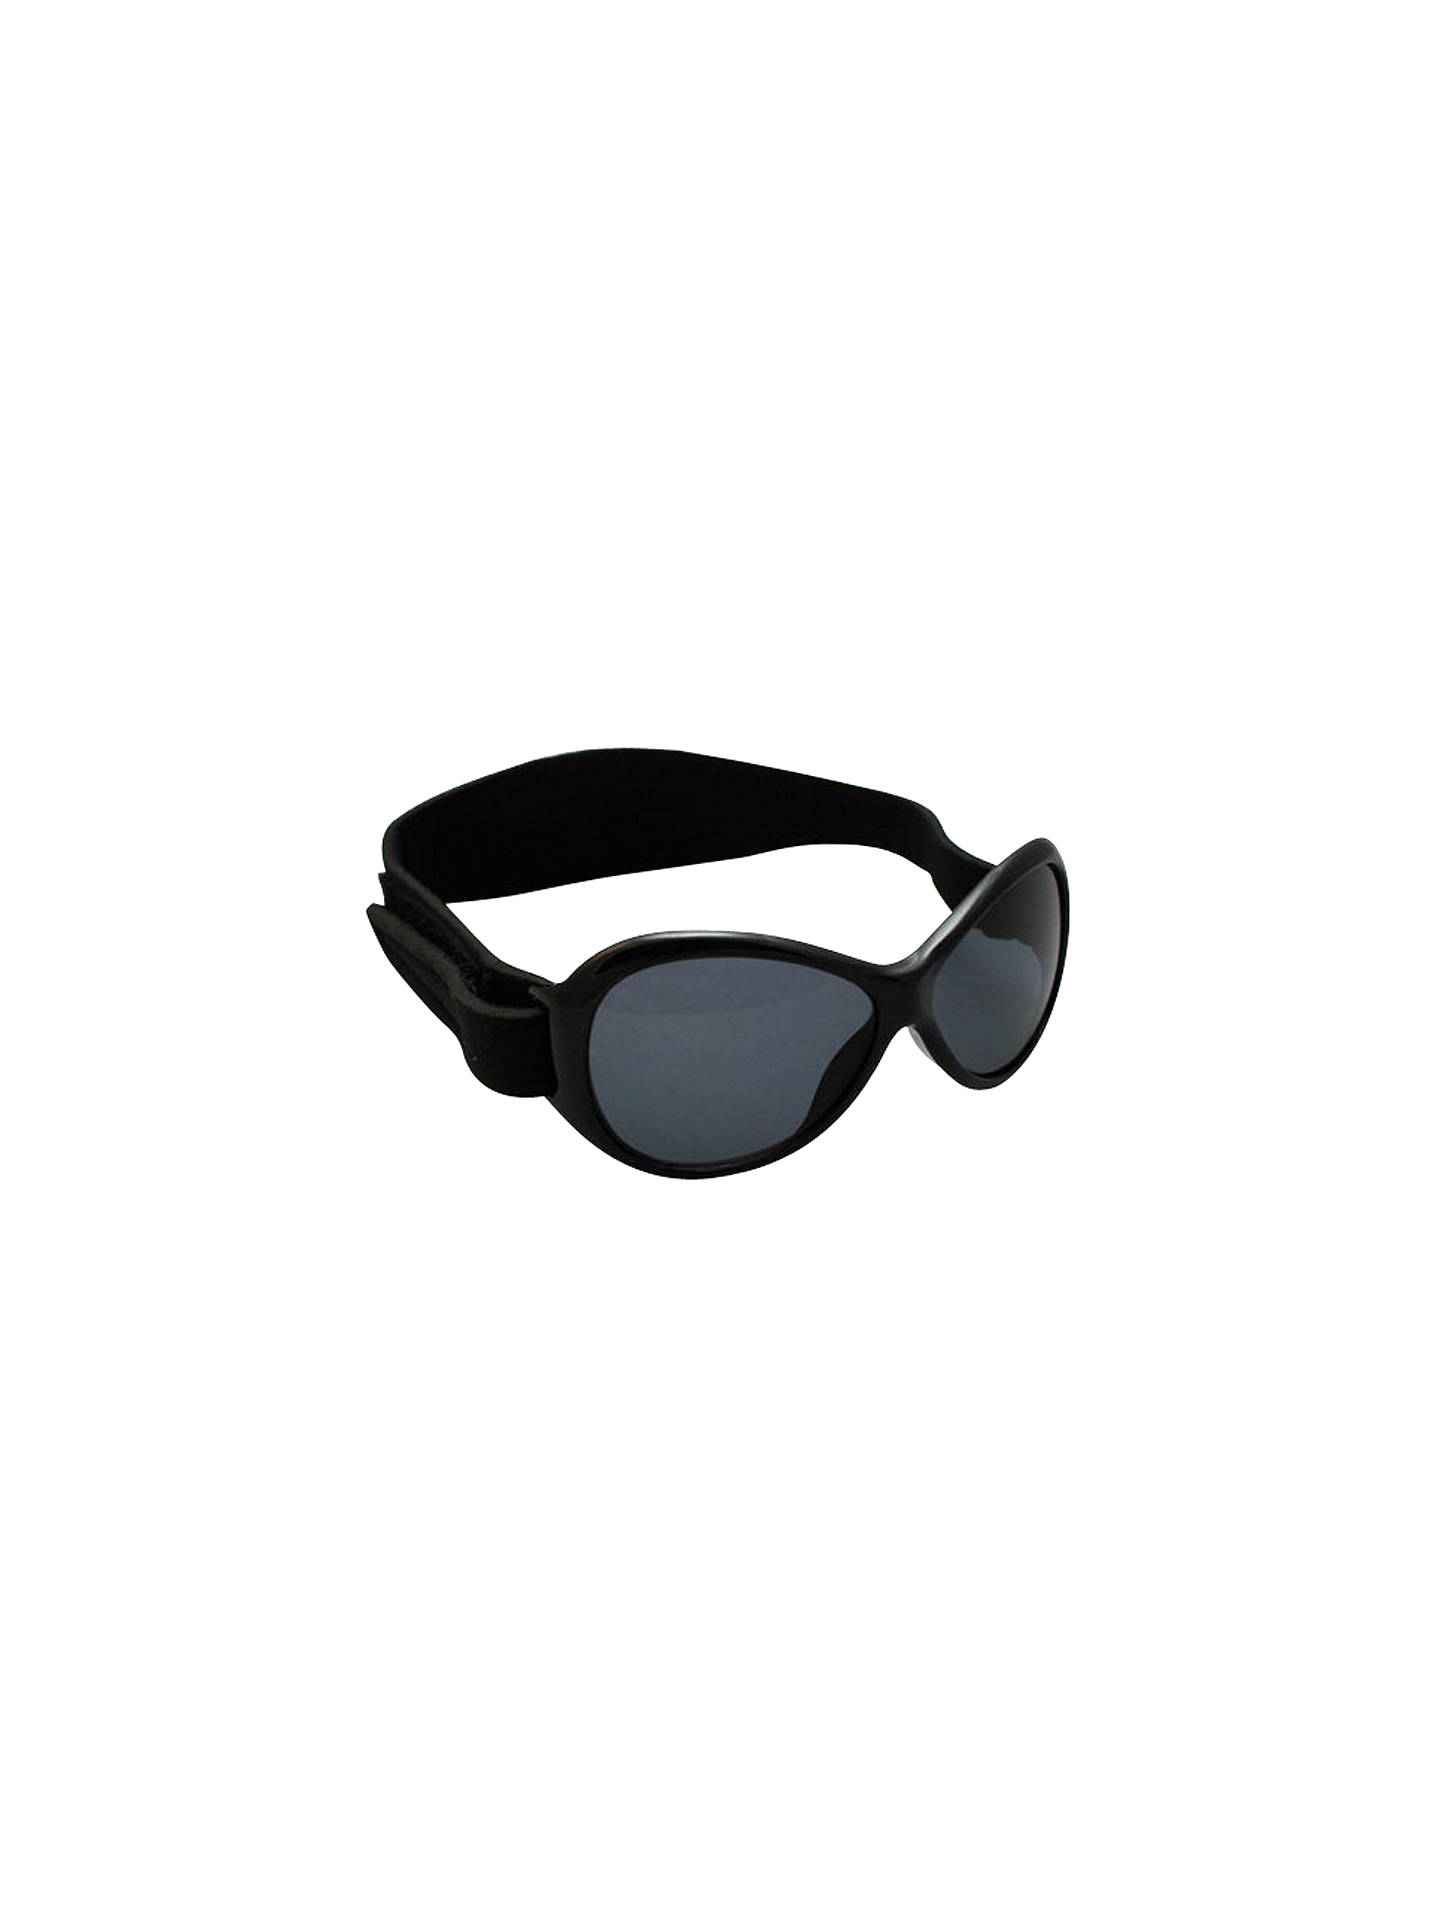 Buy Baby Banz Baby Retro Sunglasses, Black Online at johnlewis.com